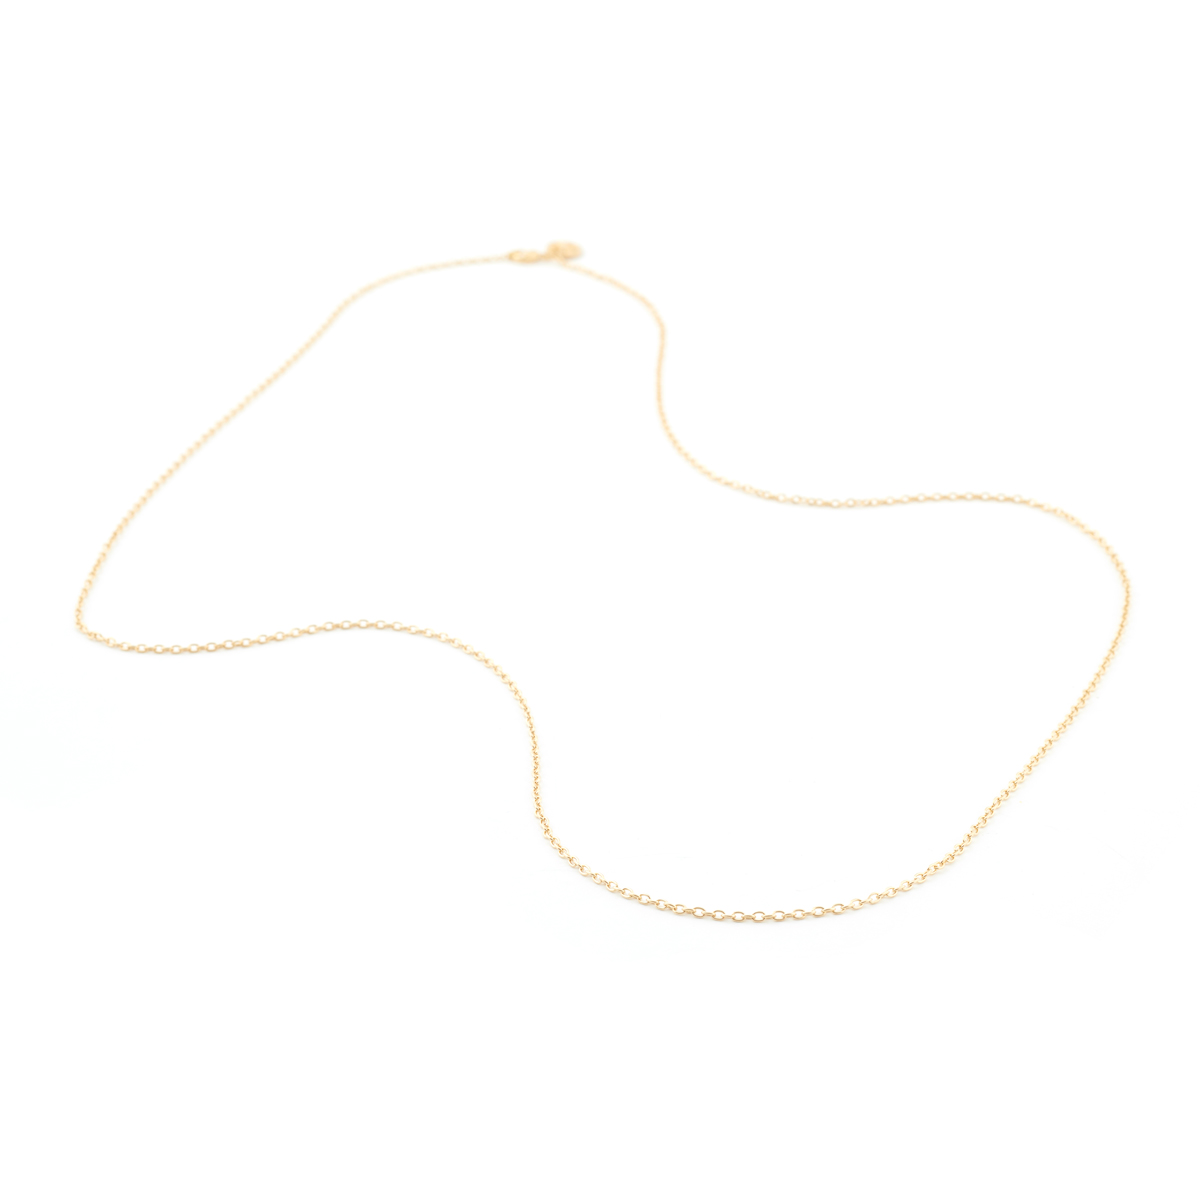 Simple chain necklace by Mirabelle – 80cm